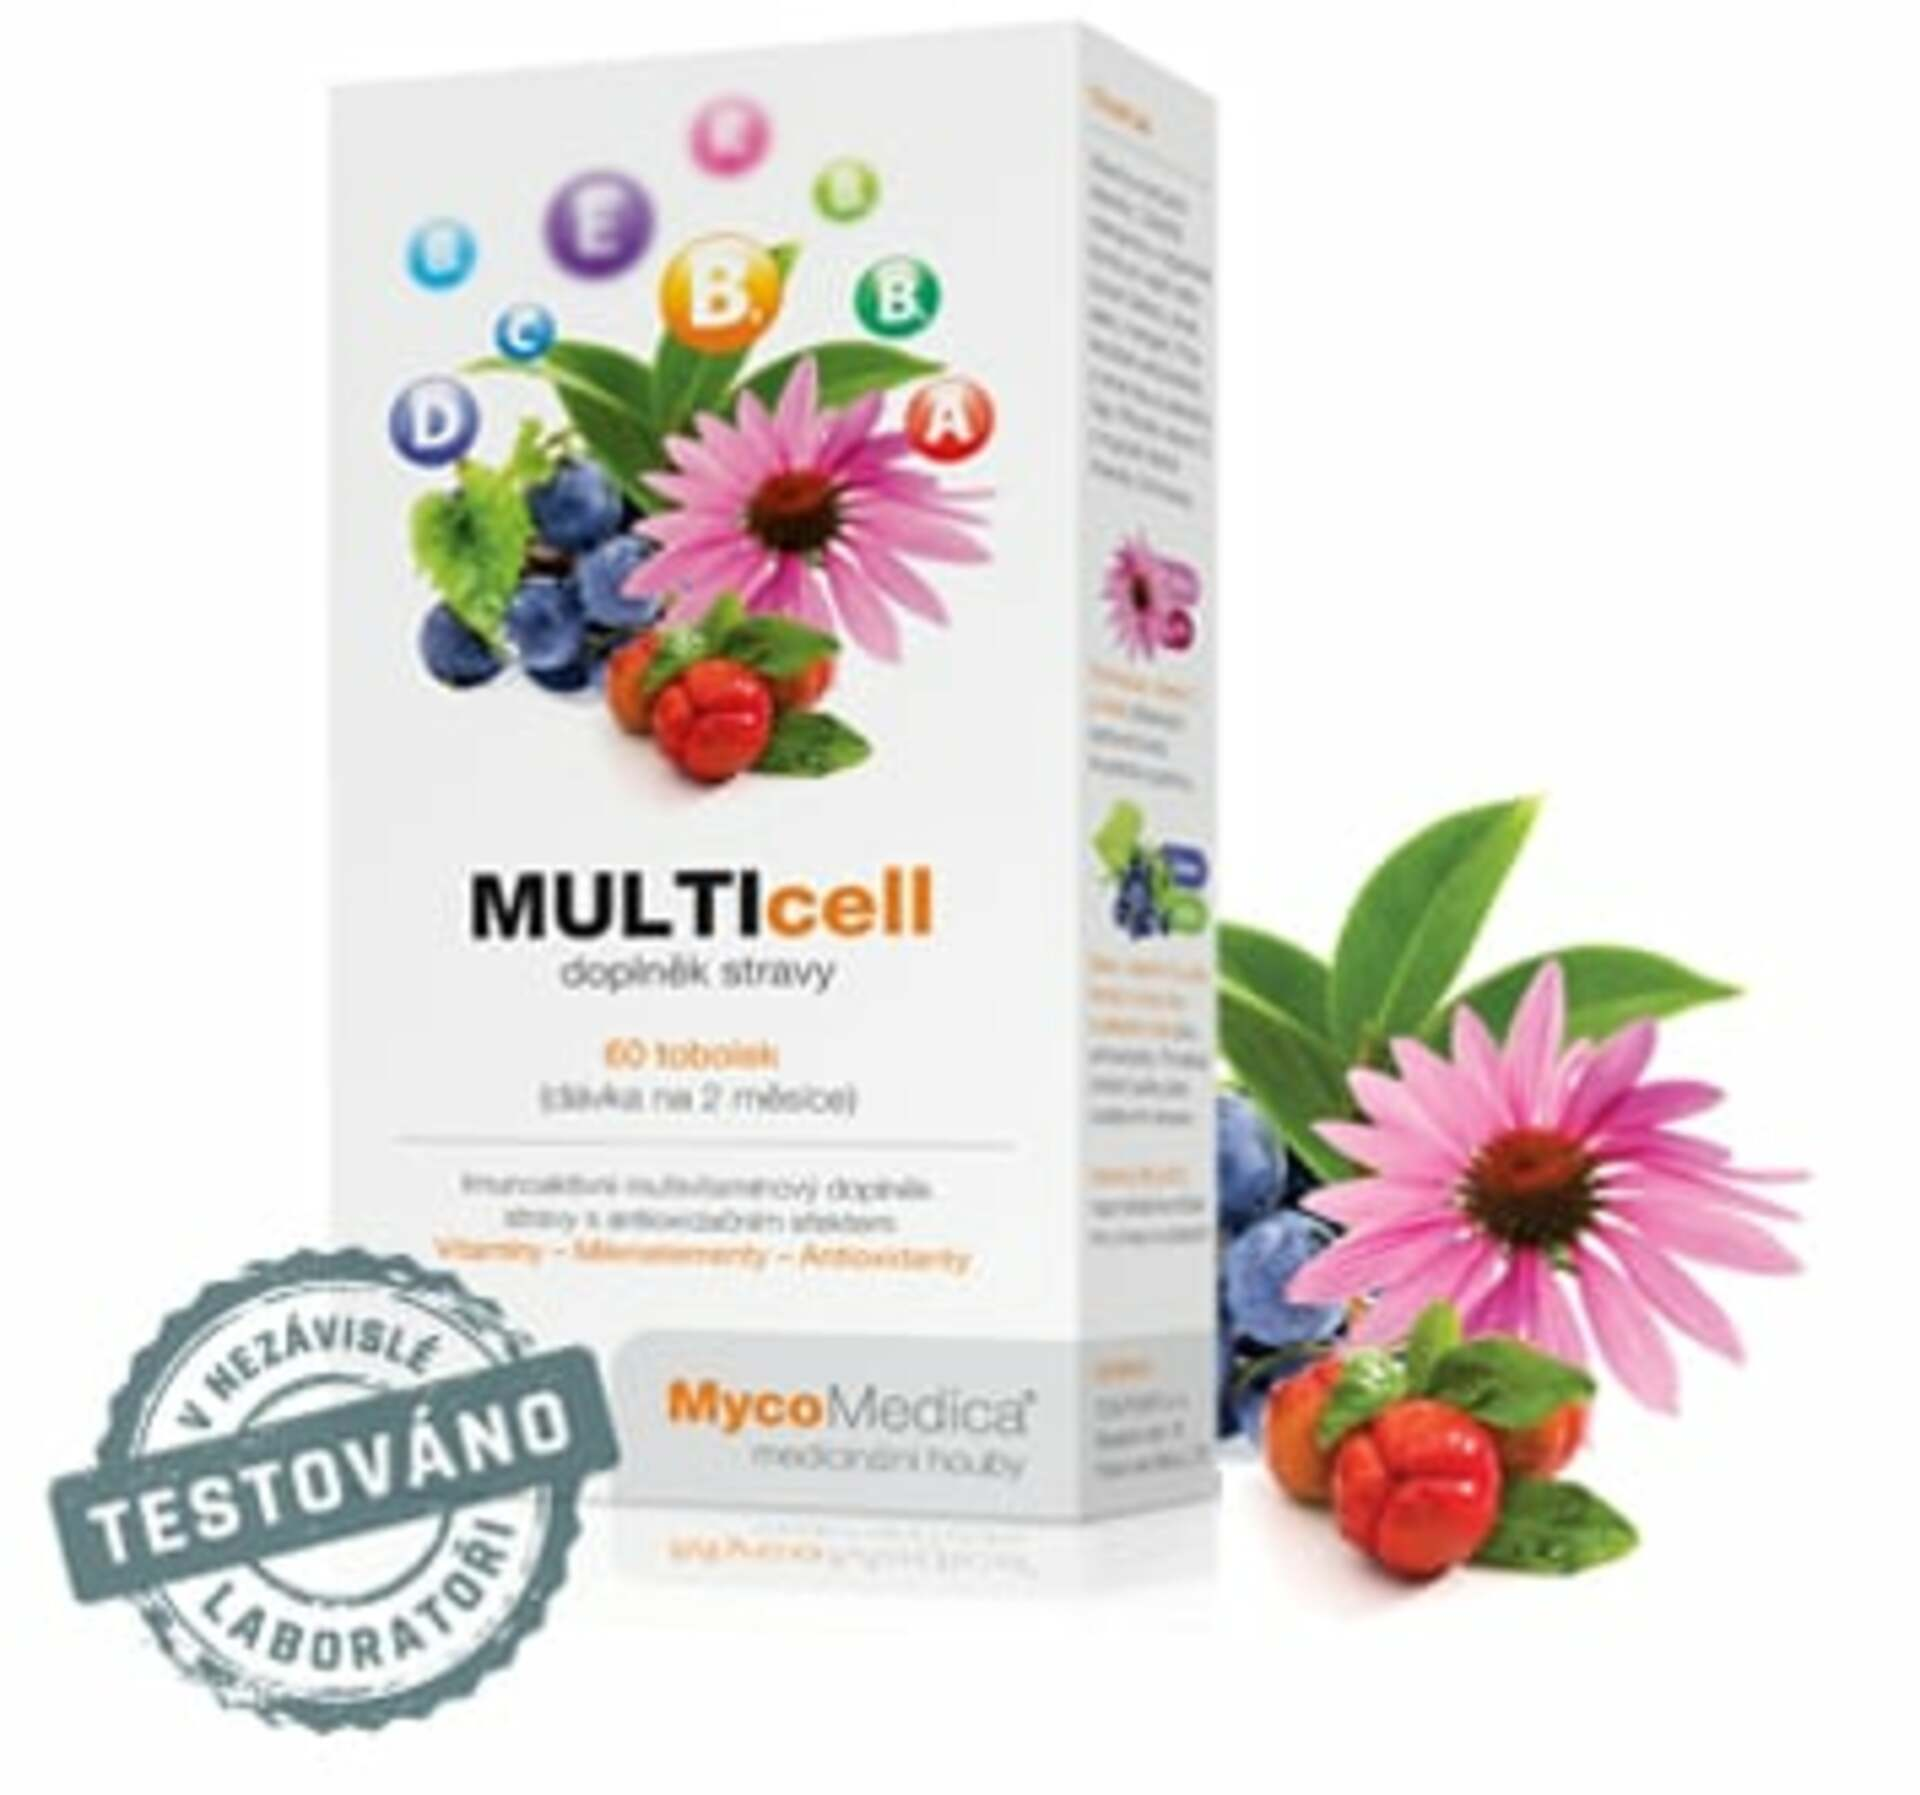 MycoMedica Multicell 60 tabletek